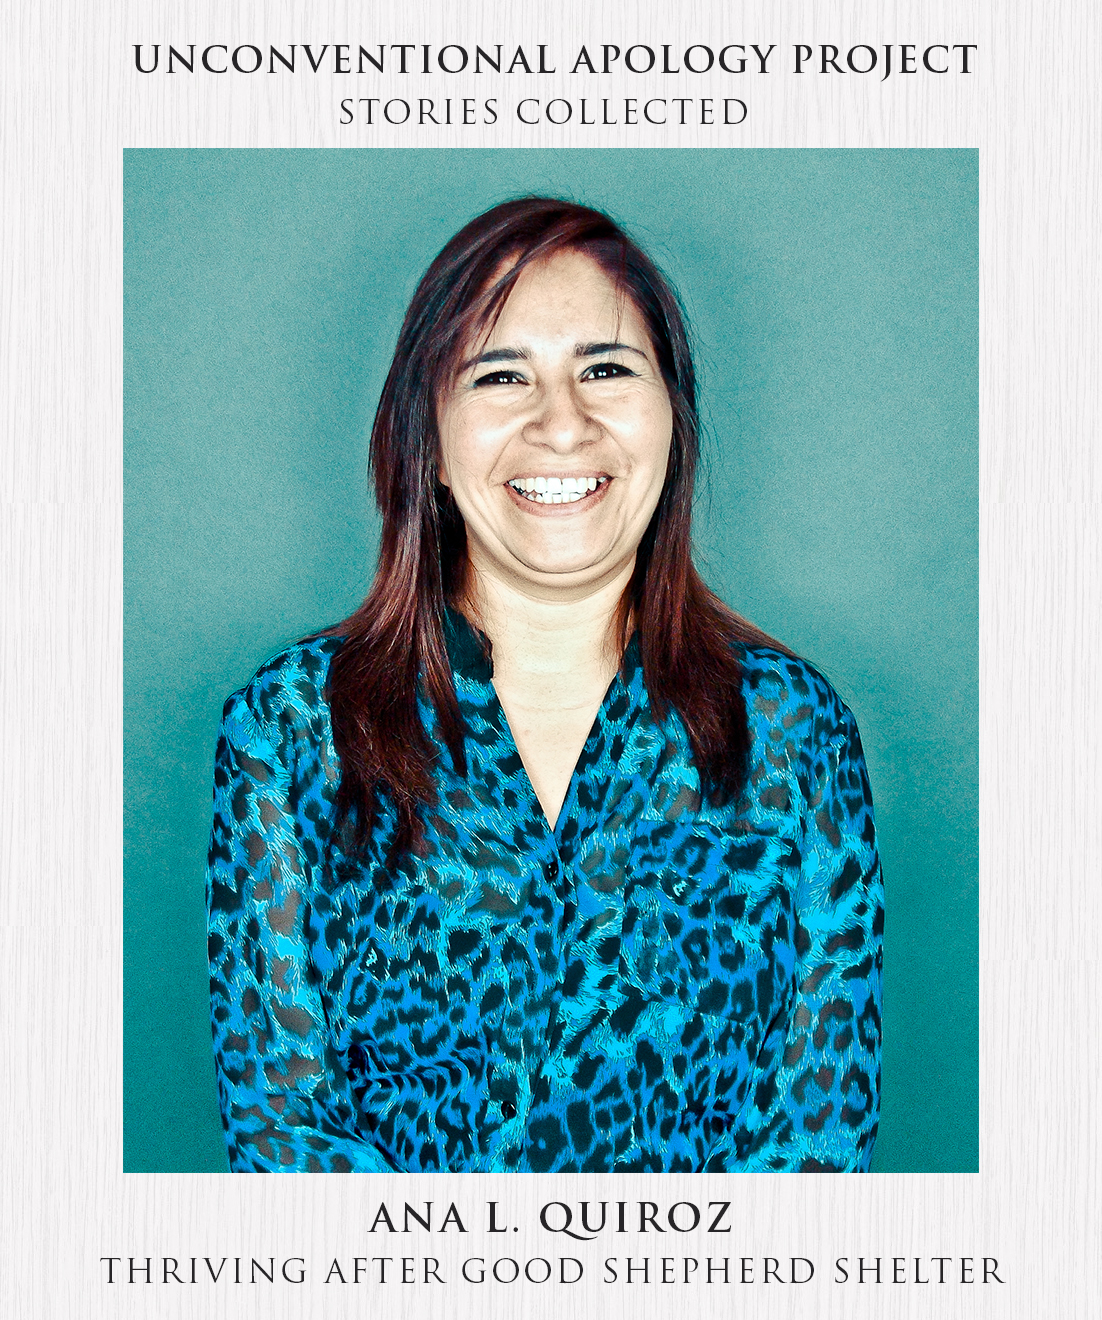 Ana L. Quiroz in Stories Collected